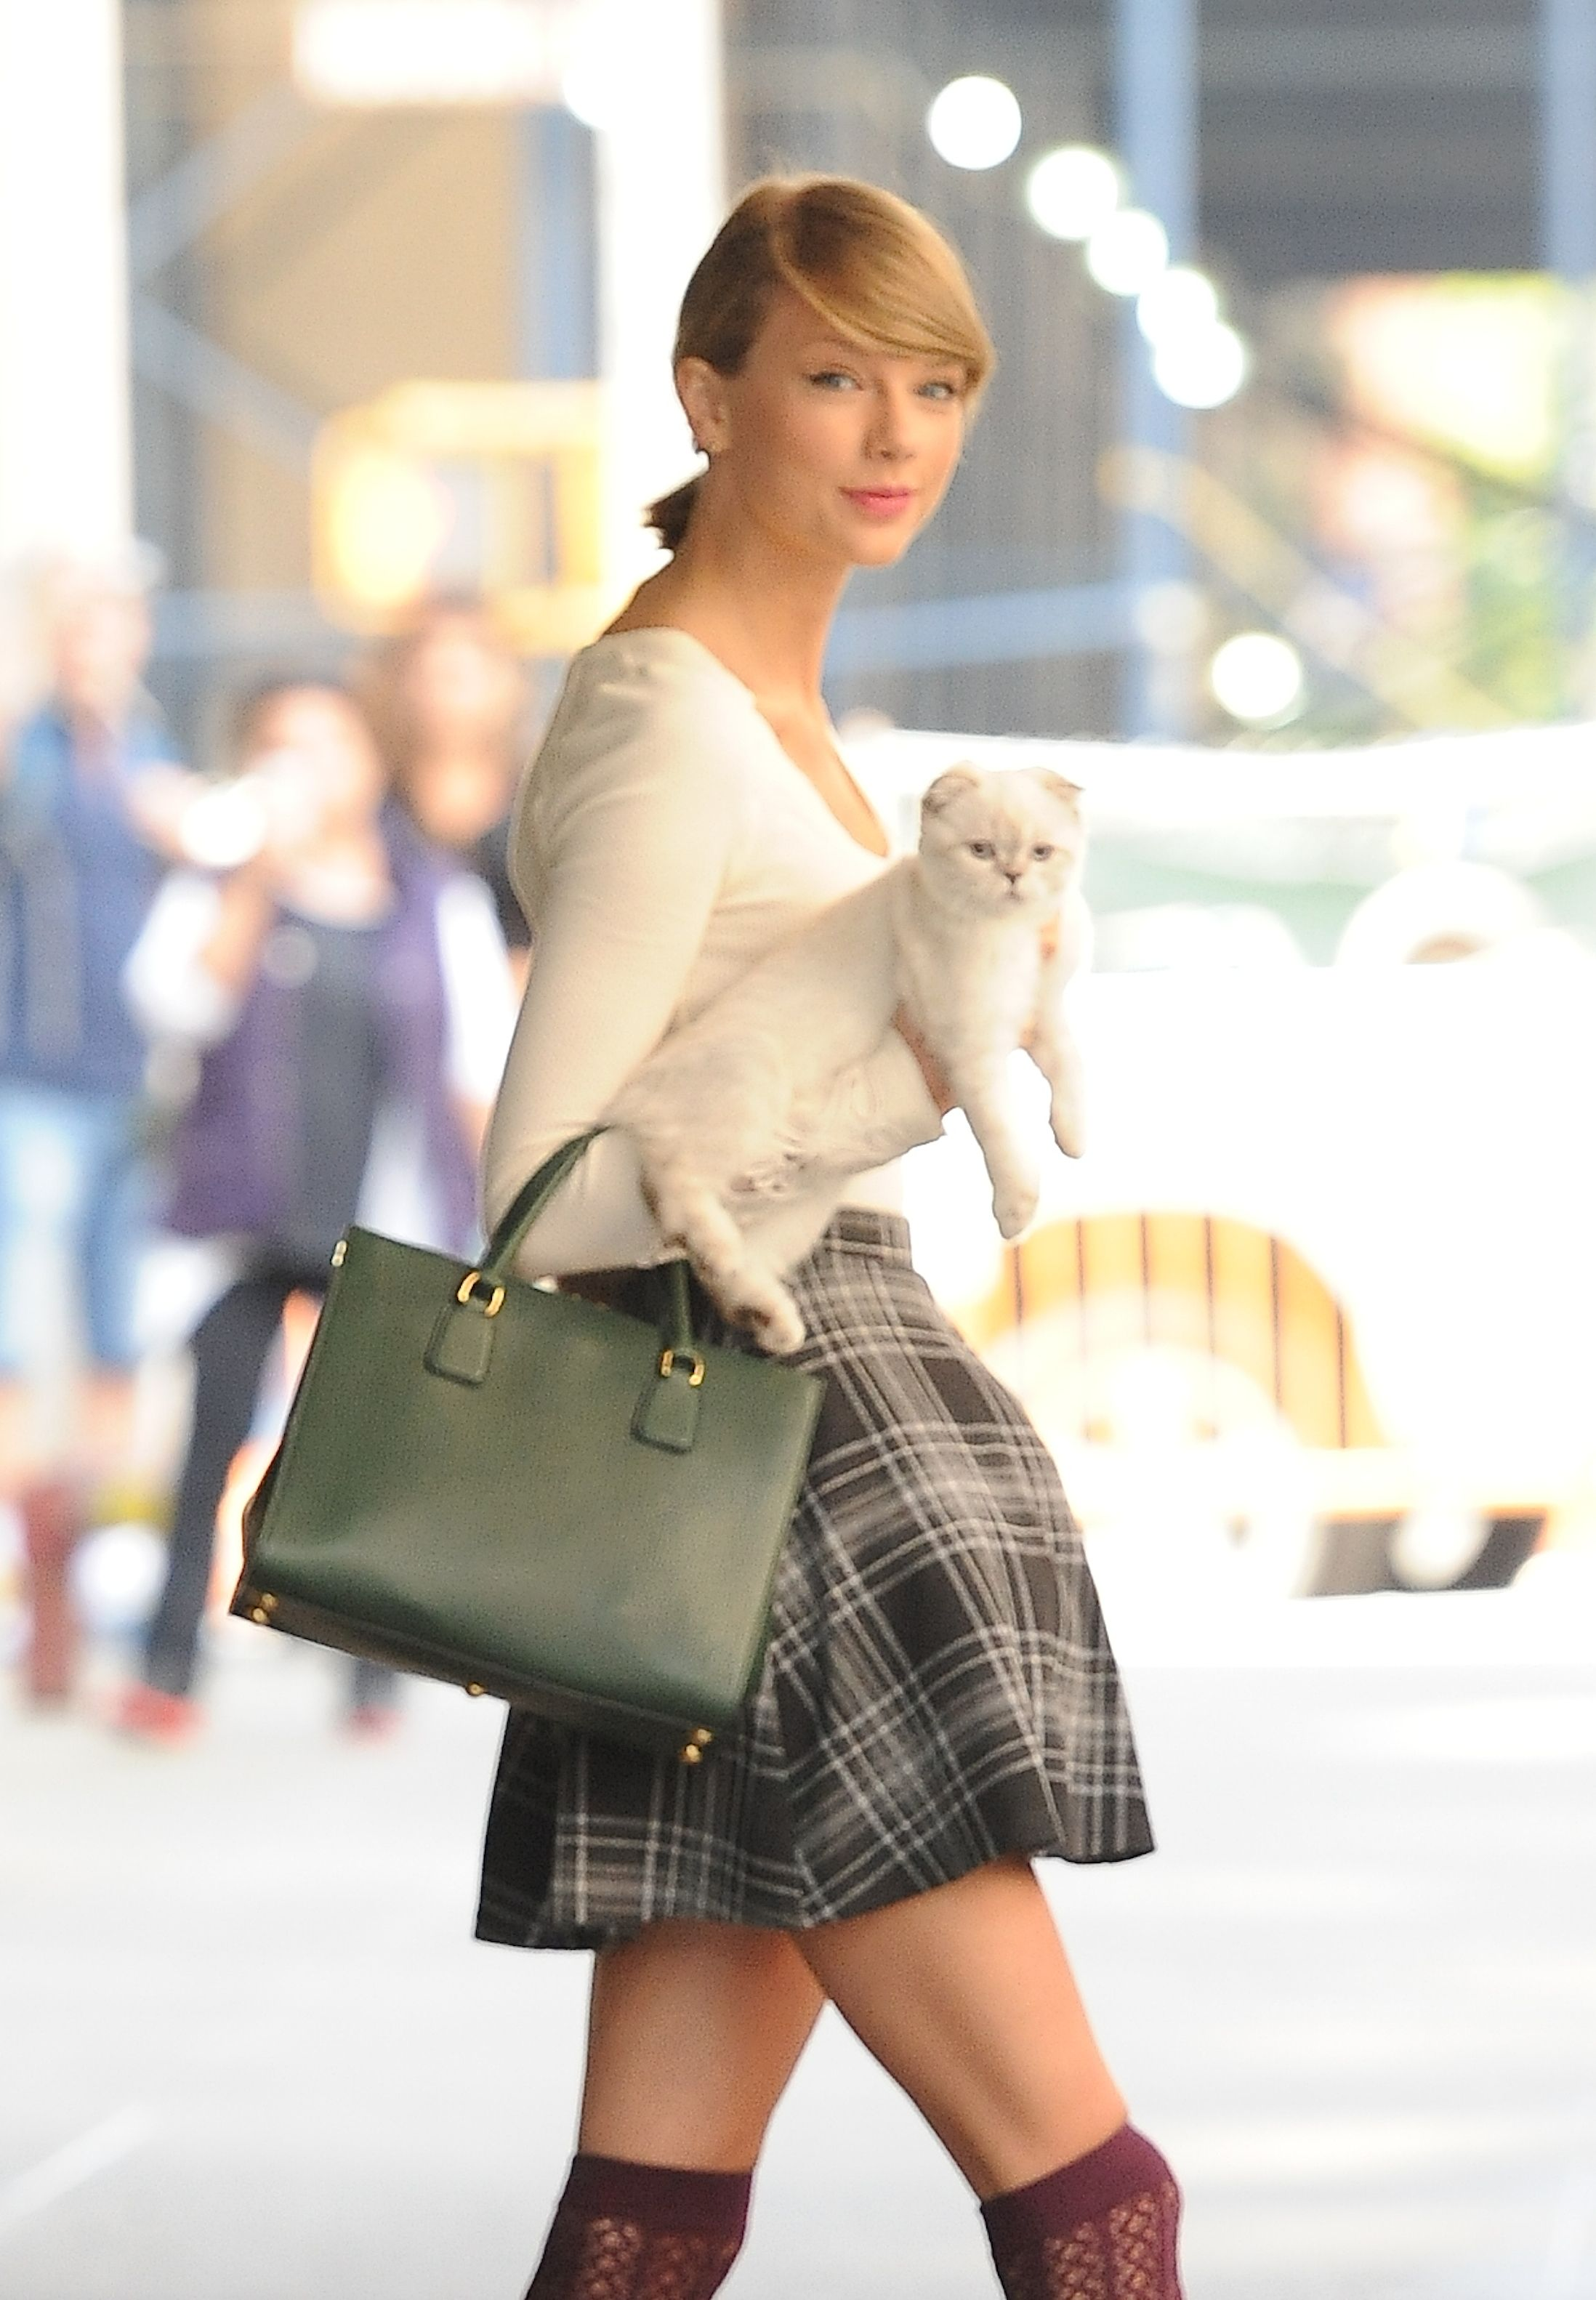 Taylor Swift and her cat named Olivia Benson